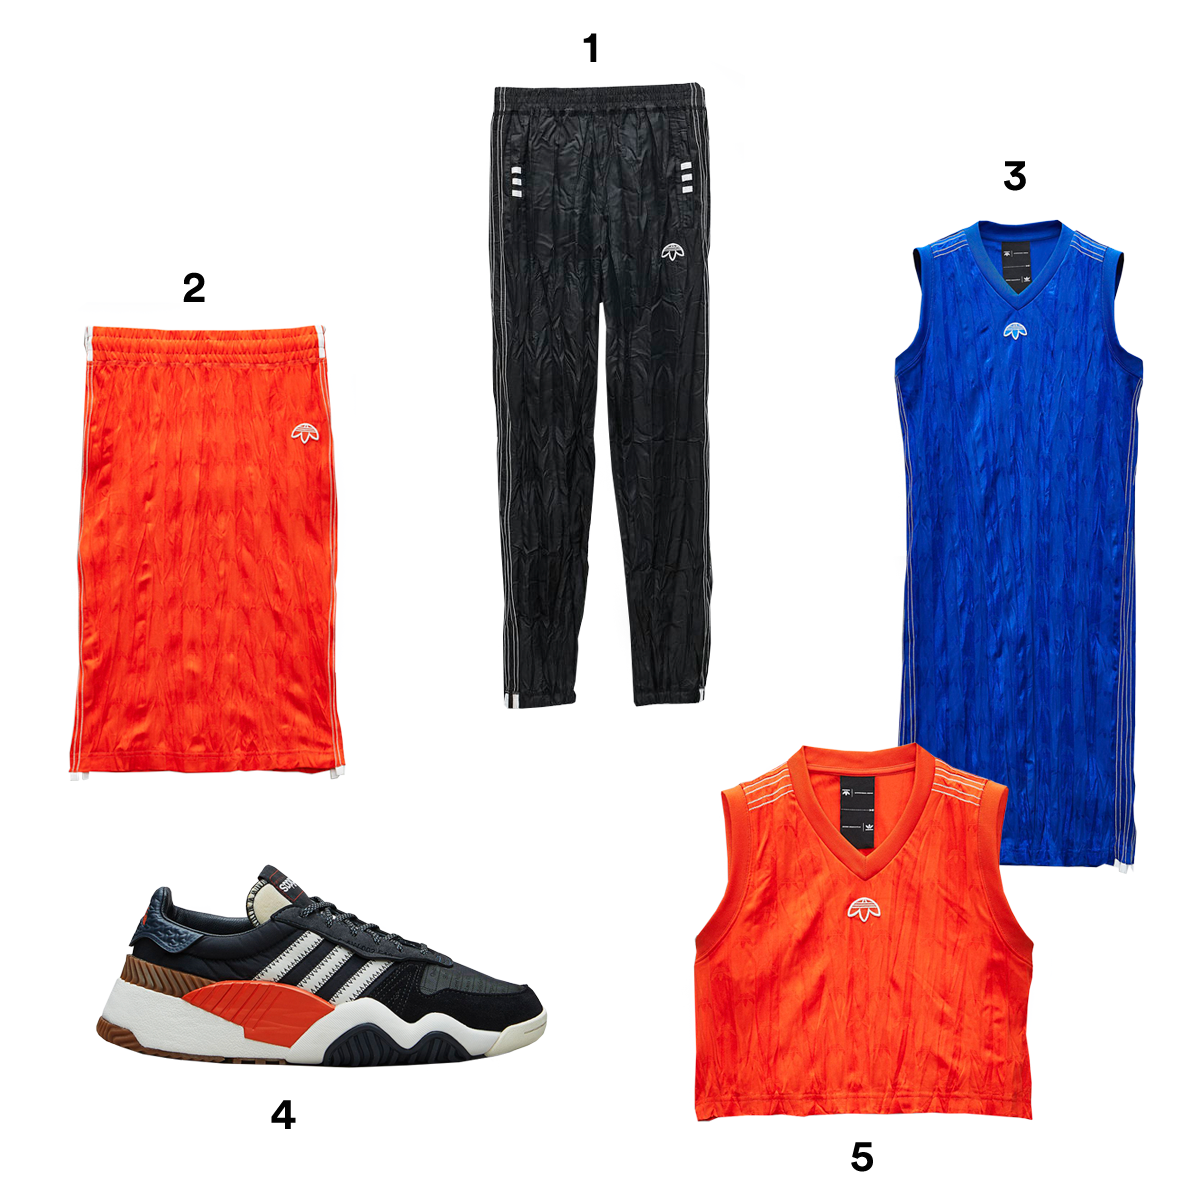 1) ALEXANDER WANG X ADIDAS ORIGINALS Adibreak Pants, available at Adidas. 2) ALEXANDER WANG X ADIDAS ORIGINALS Red Skirt, available at Adidas. 3) ALEXANDER WANG X ADIDAS ORIGINALS Blue Tank Dress, available at Adidas. 4) ALEXANDER WANG X ADIDAS ORIGINALS Run Mid Shoes, available at Adidas. 5) ALEXANDER WANG X ADIDAS ORIGINALS Red Crop Jersey, available at Adidas.